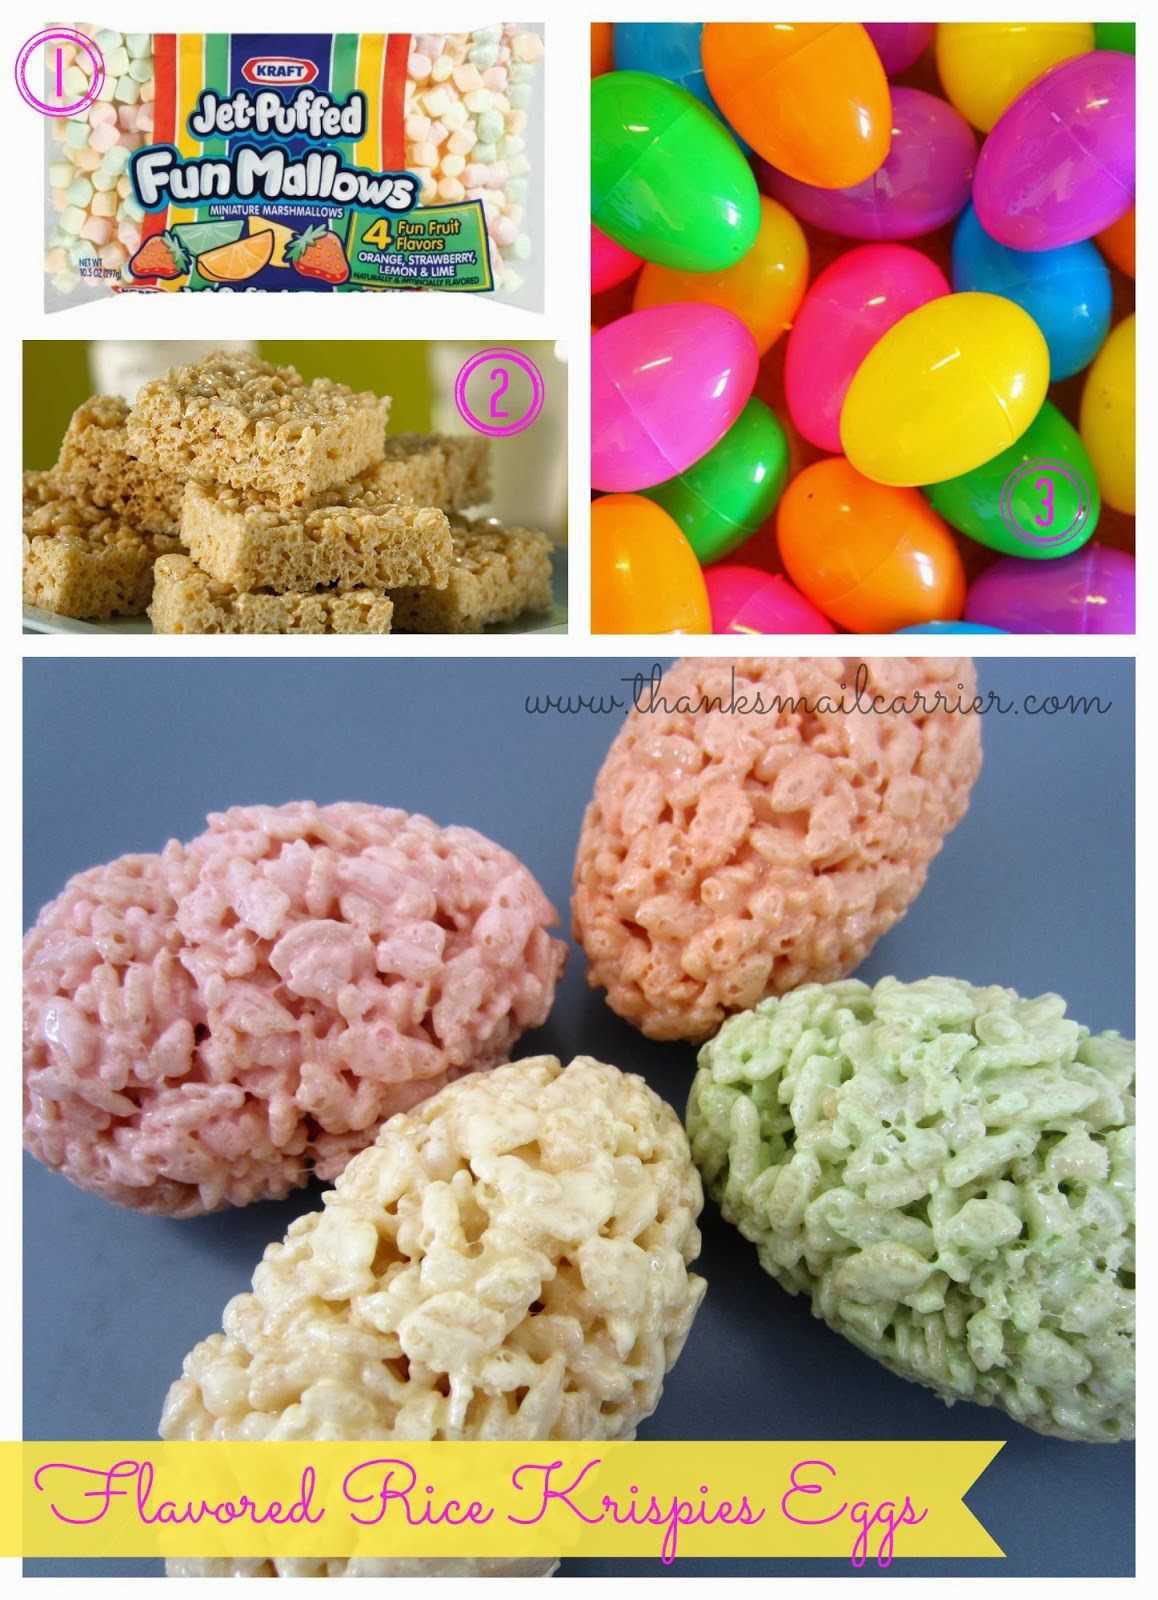 Flavored Rice Krispie Eggs